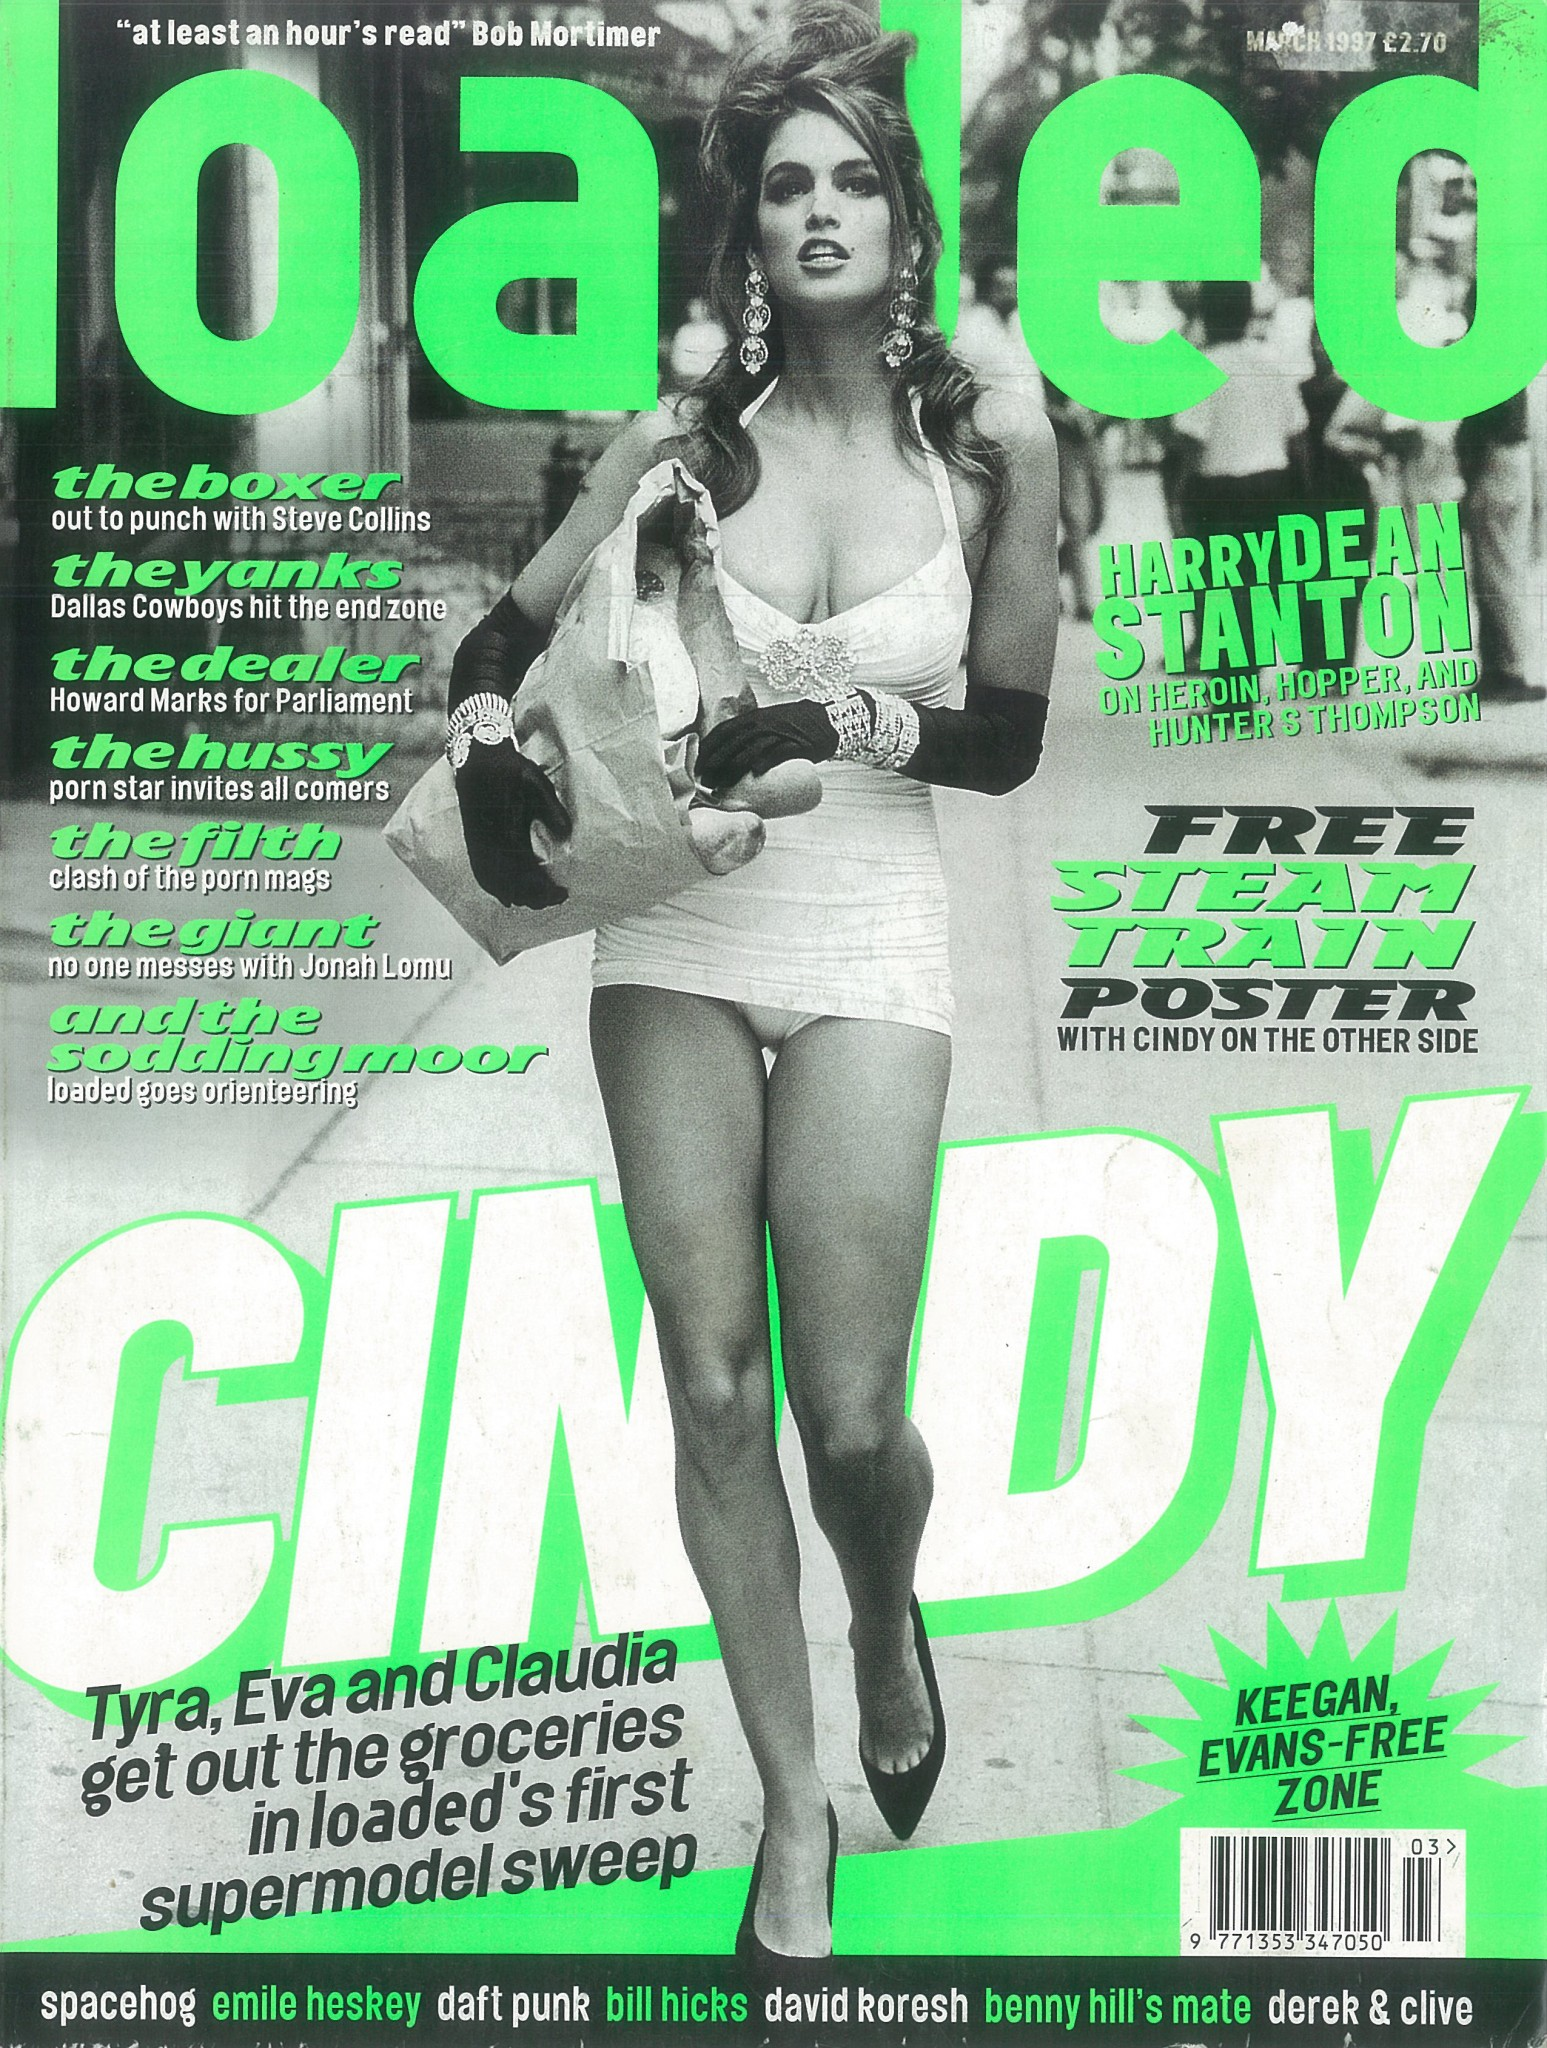 Cindy Crawford's Loaded magazine cover and exclusive interview